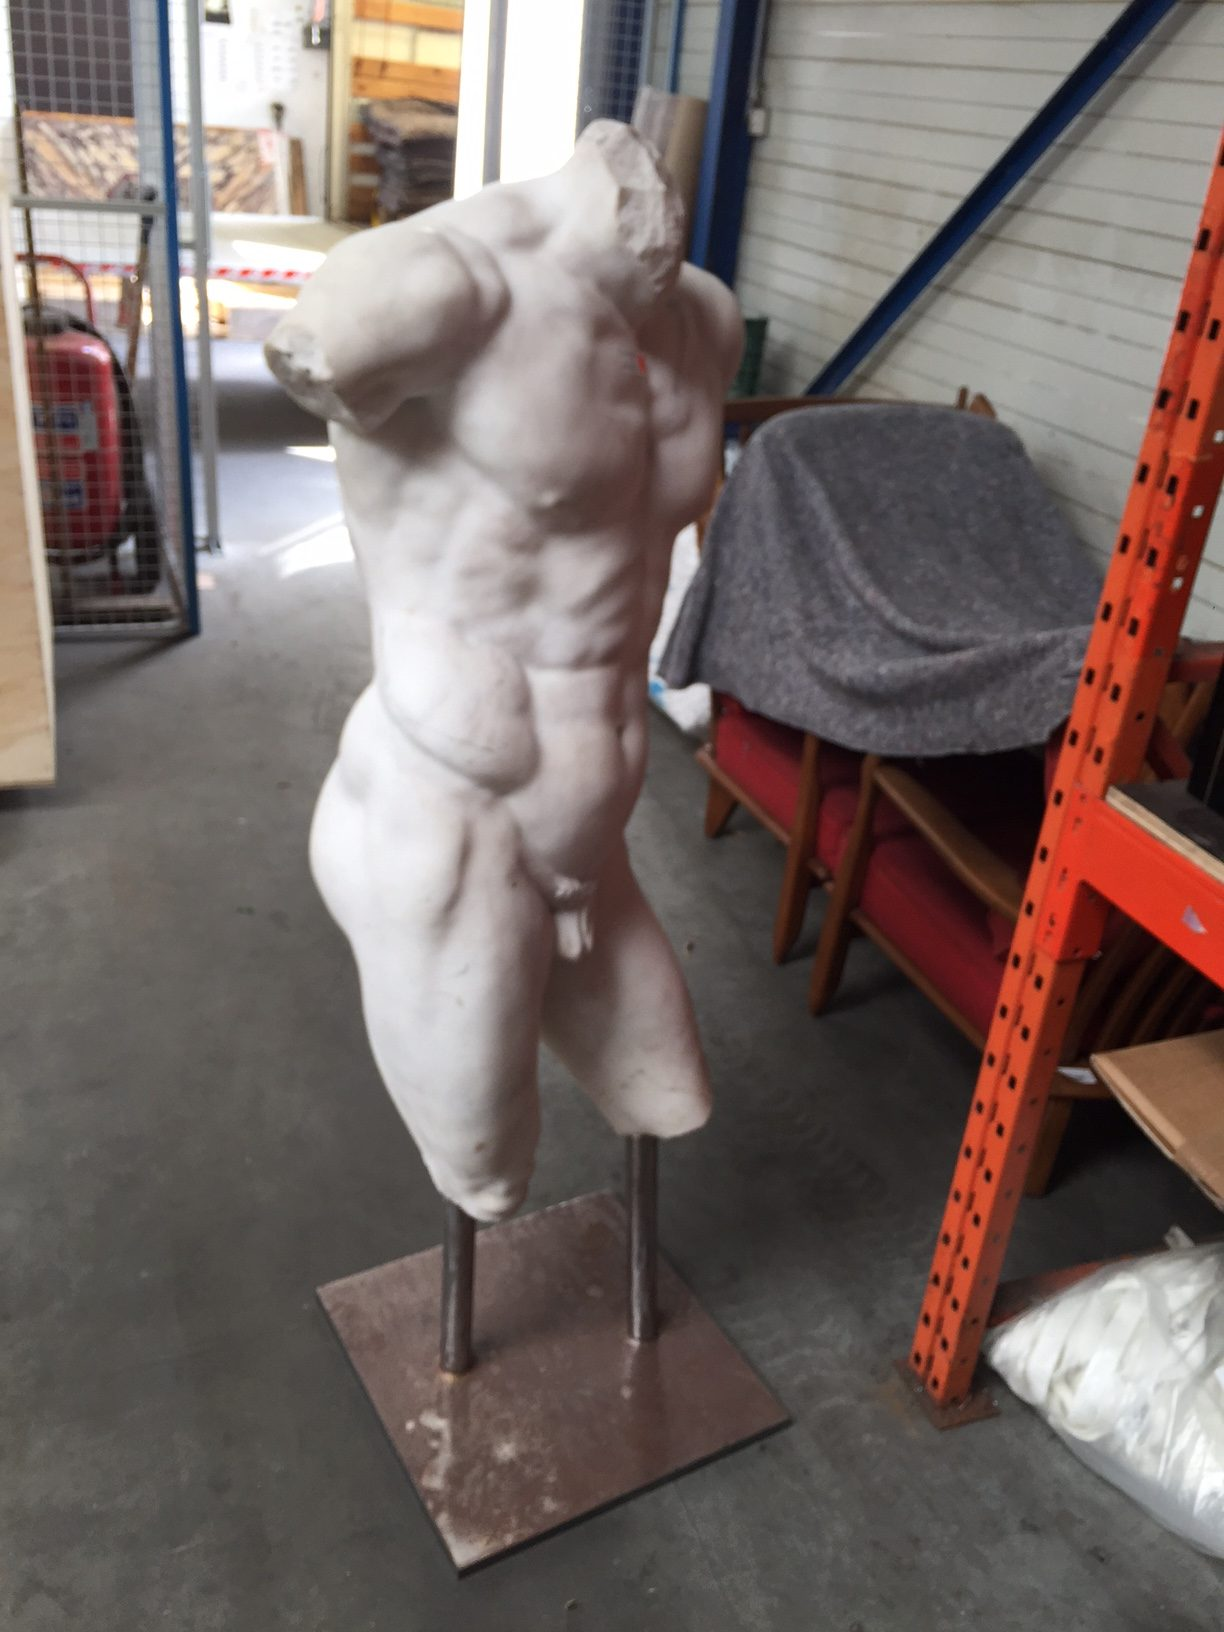 At an Antiques Dealer in Brussels: Crating, packing and shipping antique statuary